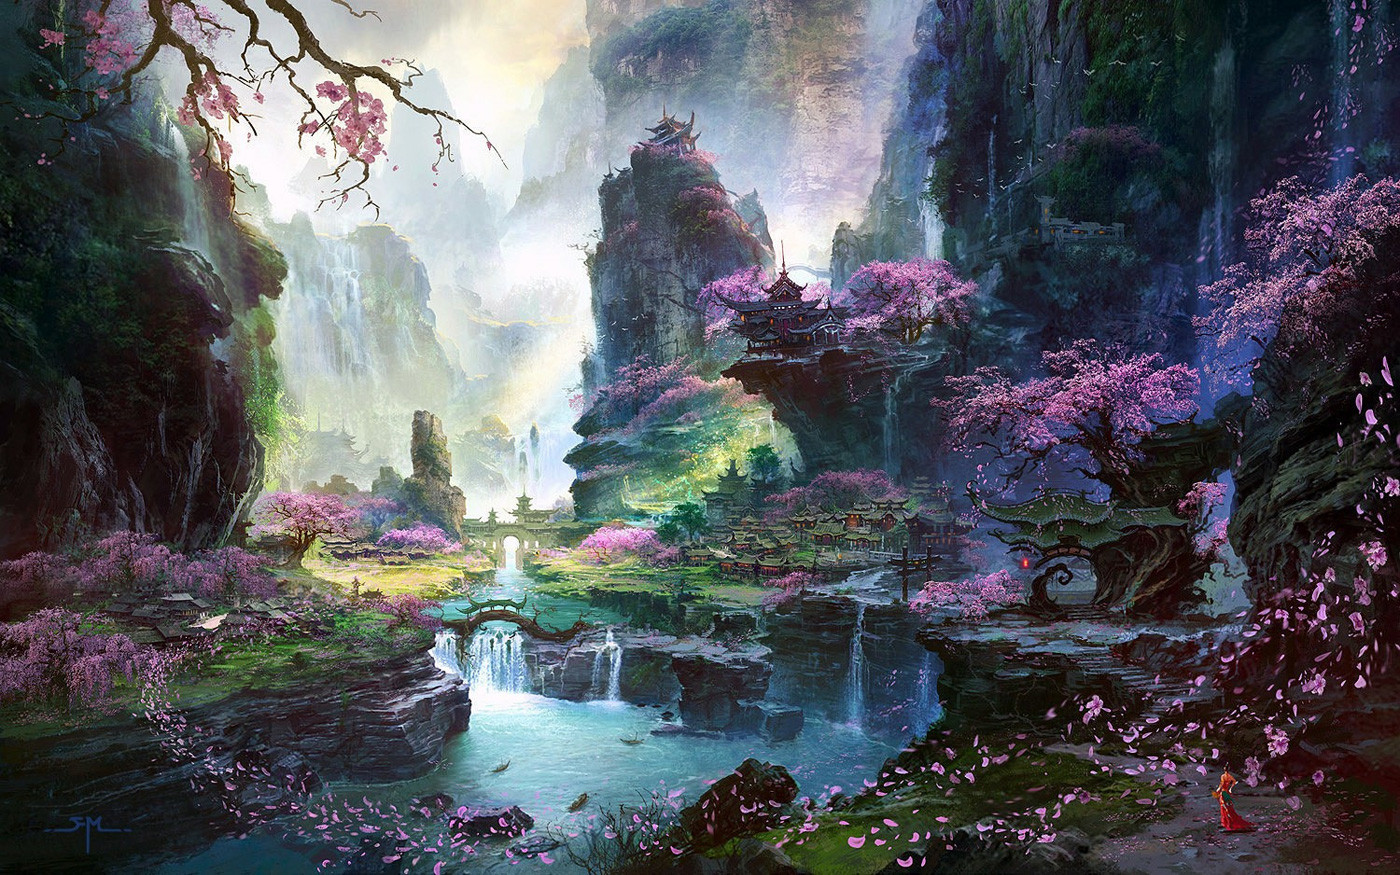 Best ideas about Fantasy Landscape Art . Save or Pin Fan Ming Now.